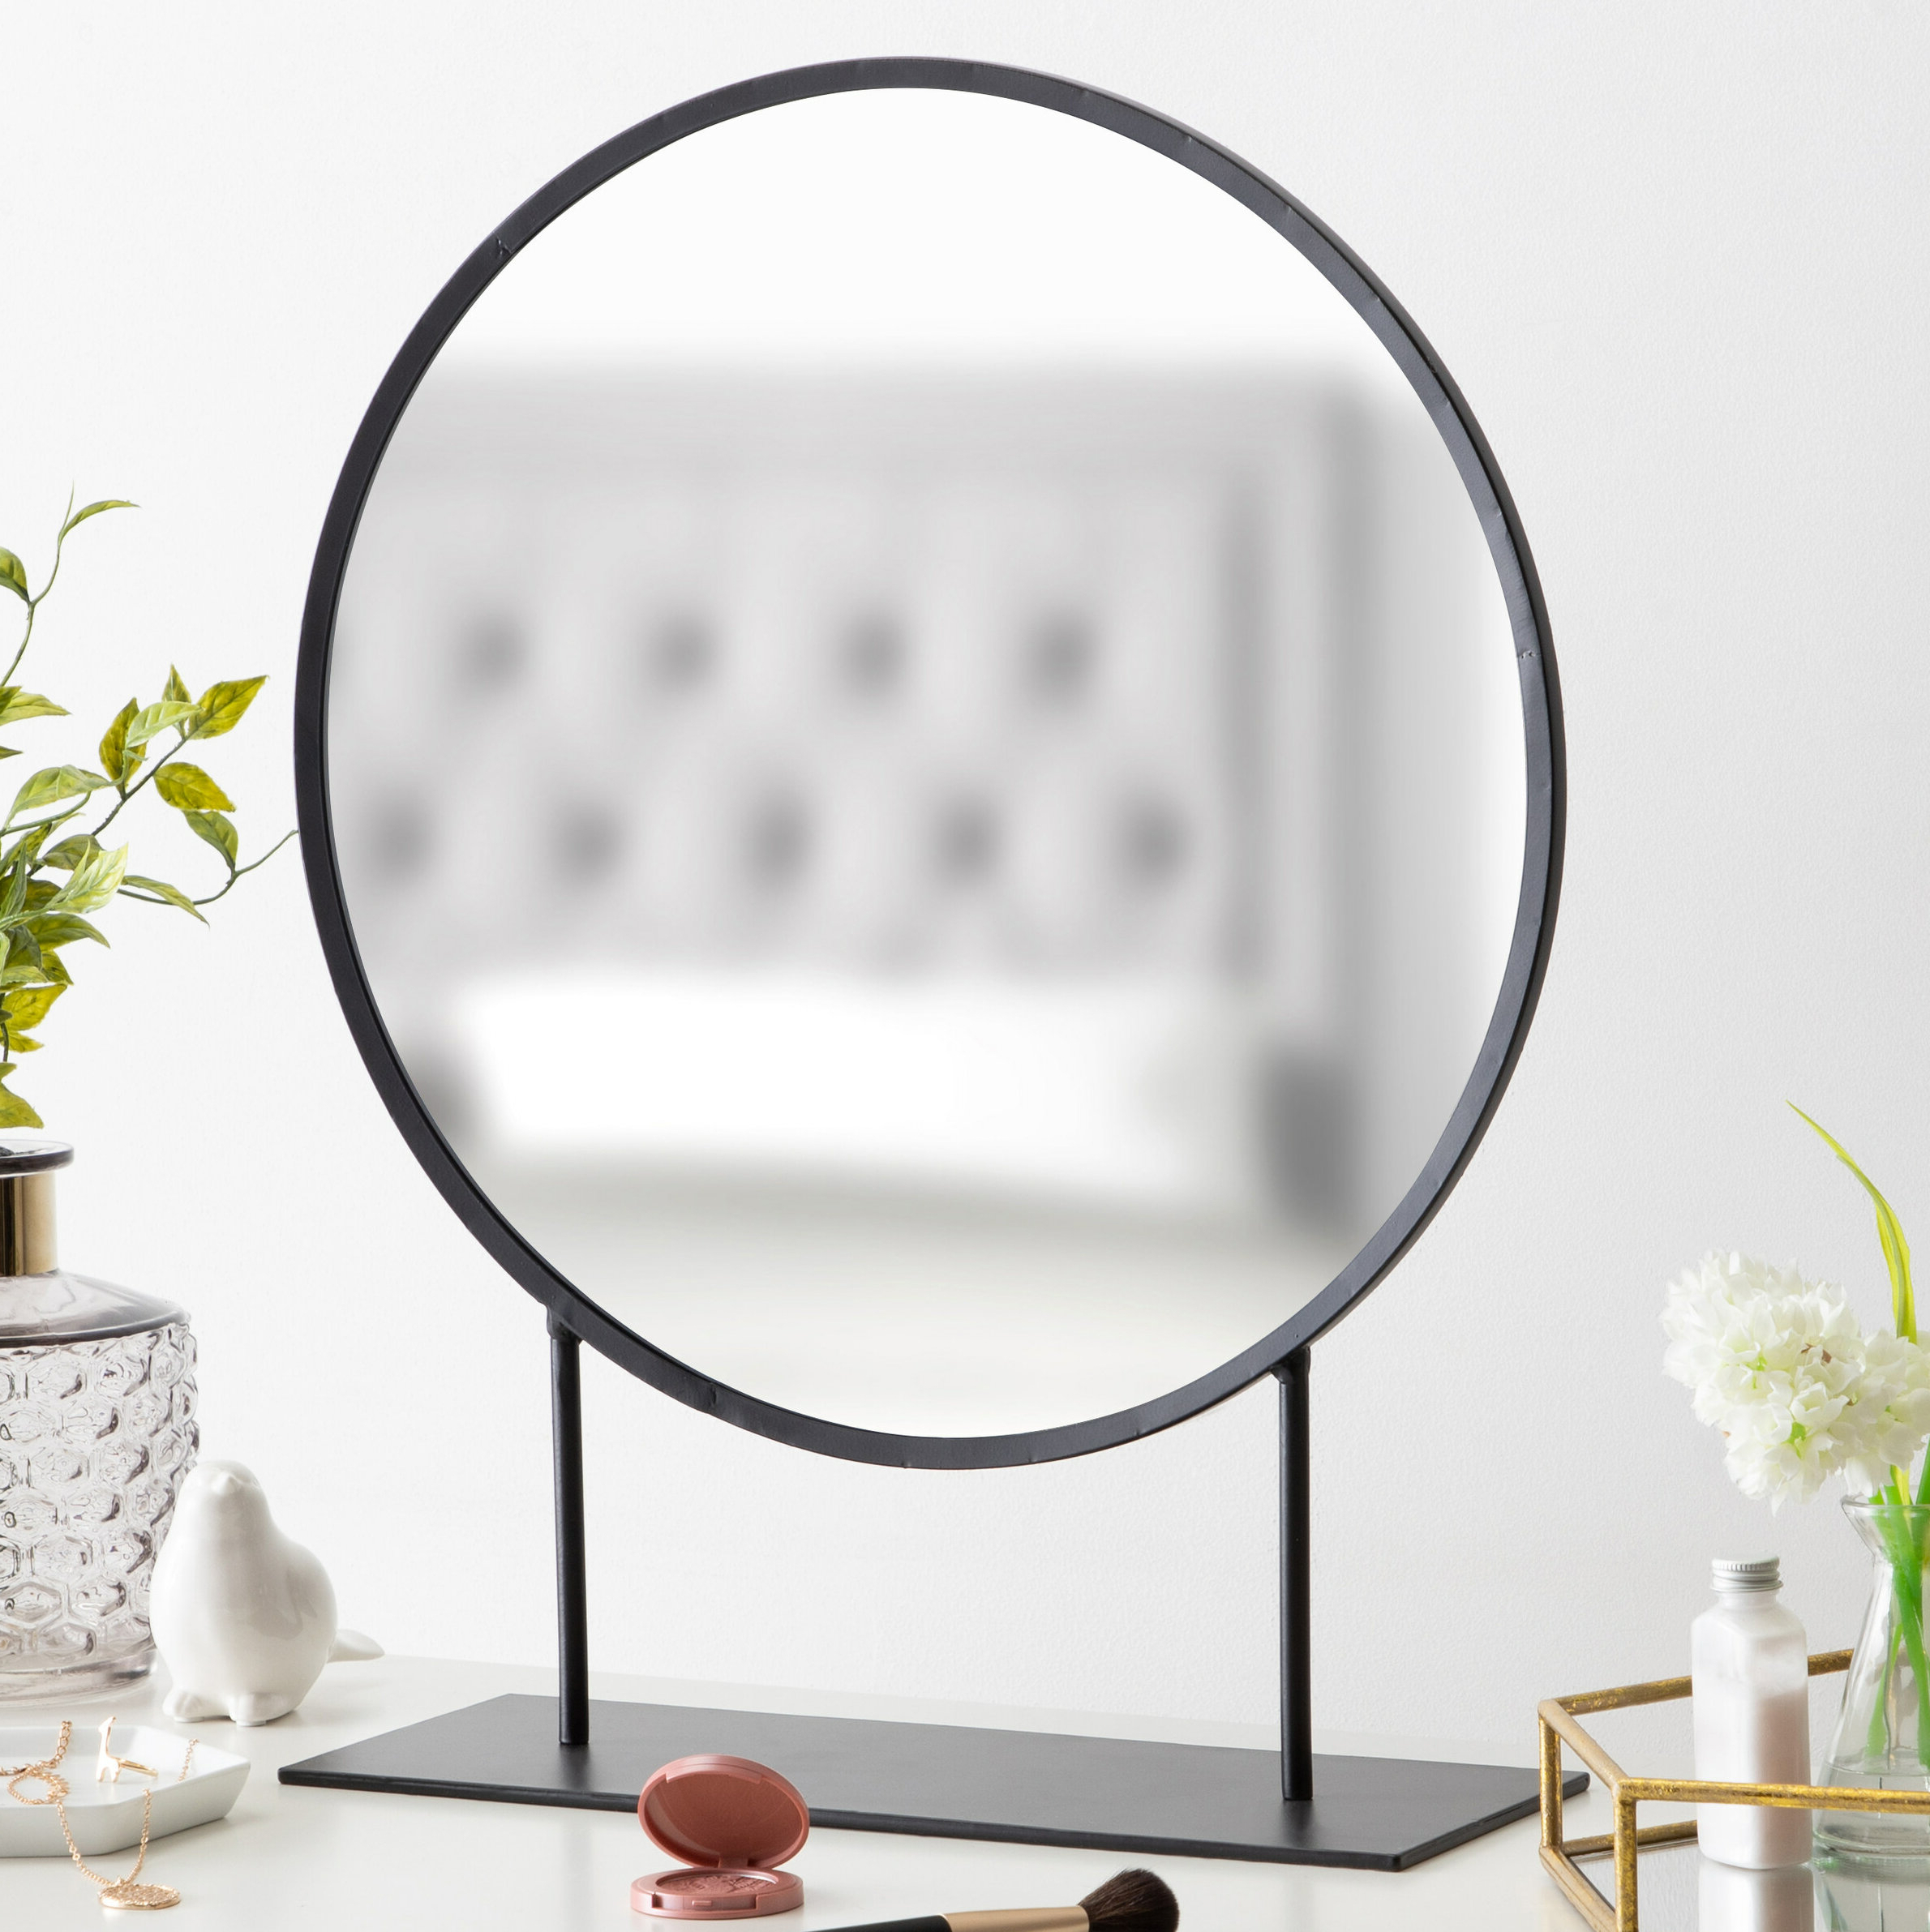 Glam Beveled Accent Mirrors Intended For Famous Loftin Modern Glam Round Beveled Accent Mirror (View 9 of 20)